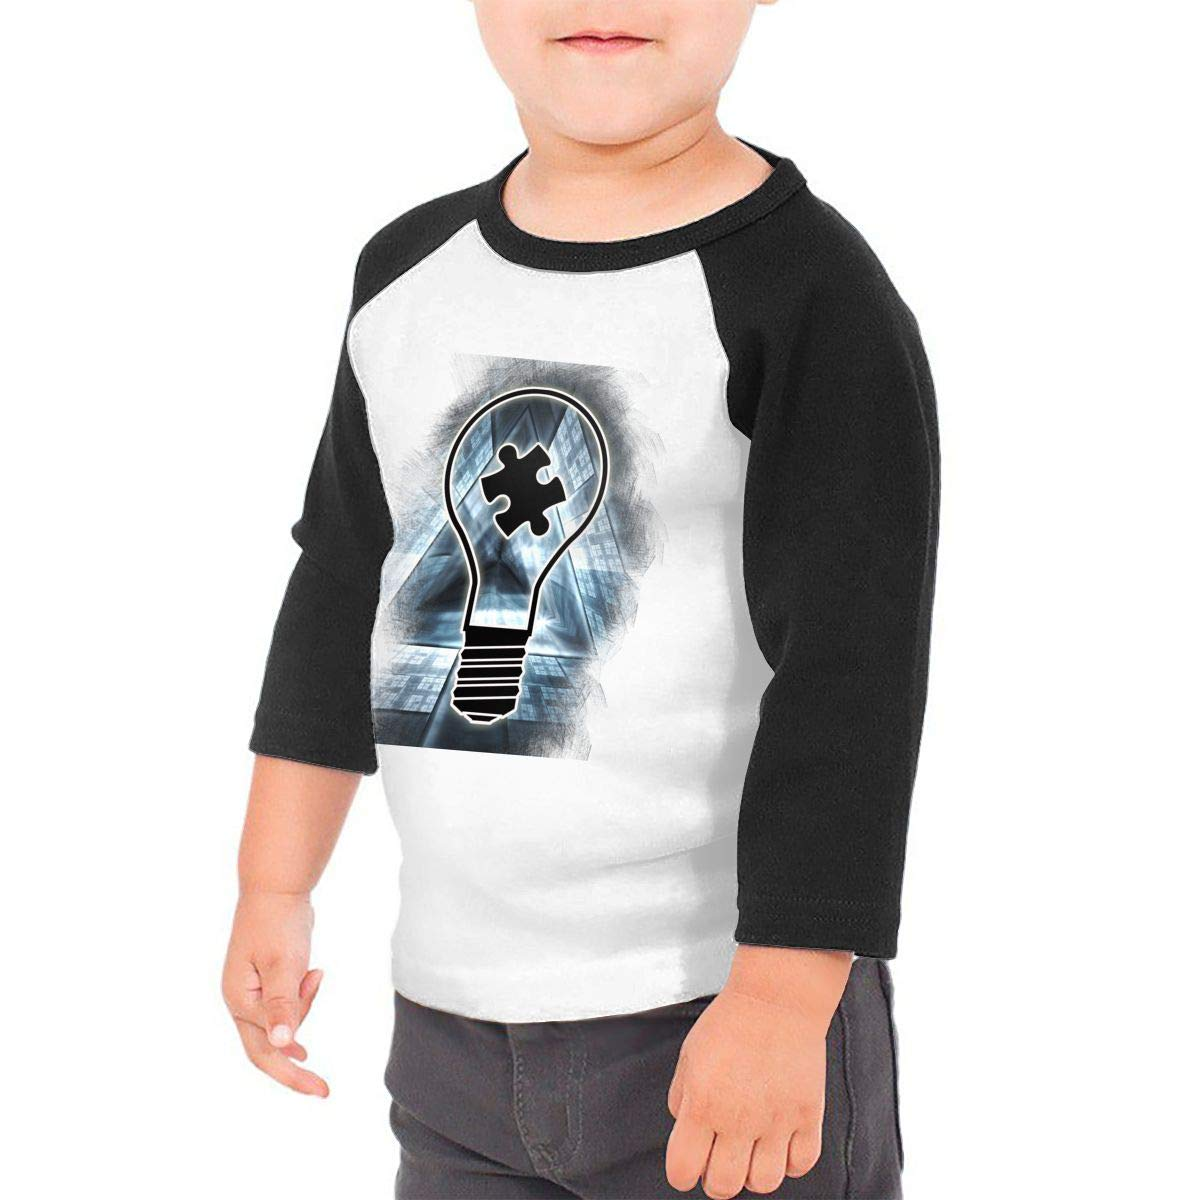 Manlee Lightbulb Autism Awareness Unisex 100/% Cotton Childrens 3//4 Sleeves T-Shirt Top Tees 2T~5//6T